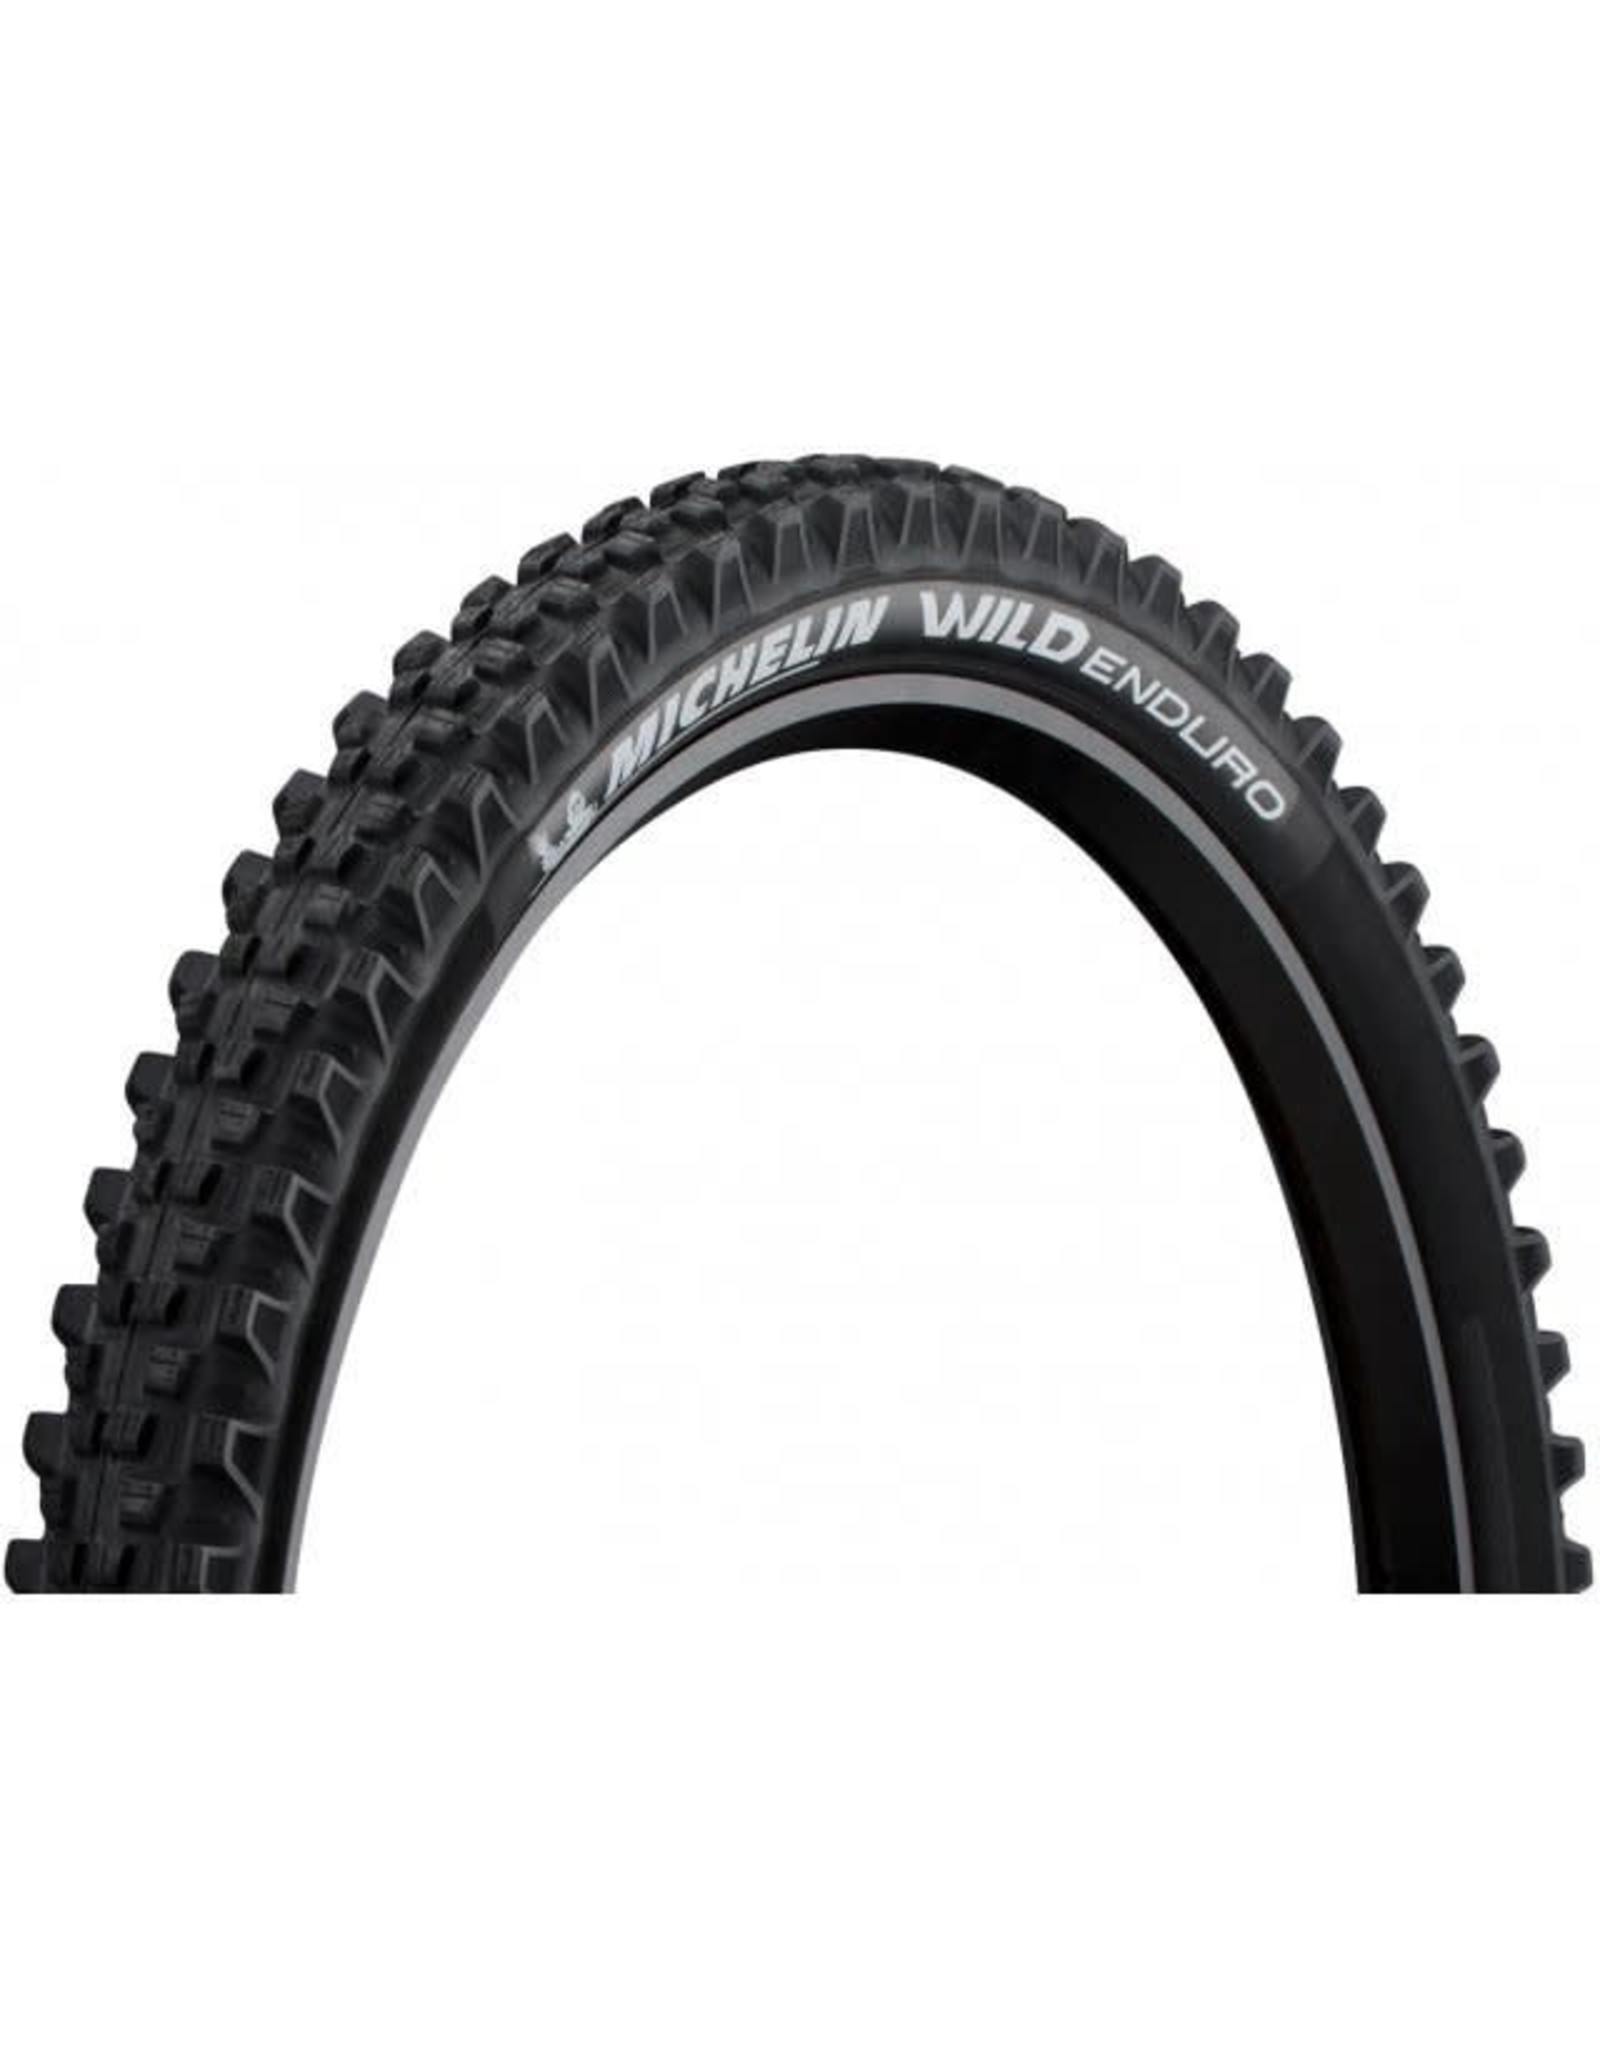 Michelin 27.5x2.4 Michelin Wild Enduro Rear Tire Fold, TR, GUM-X, GravityShield, 60TPI, Black